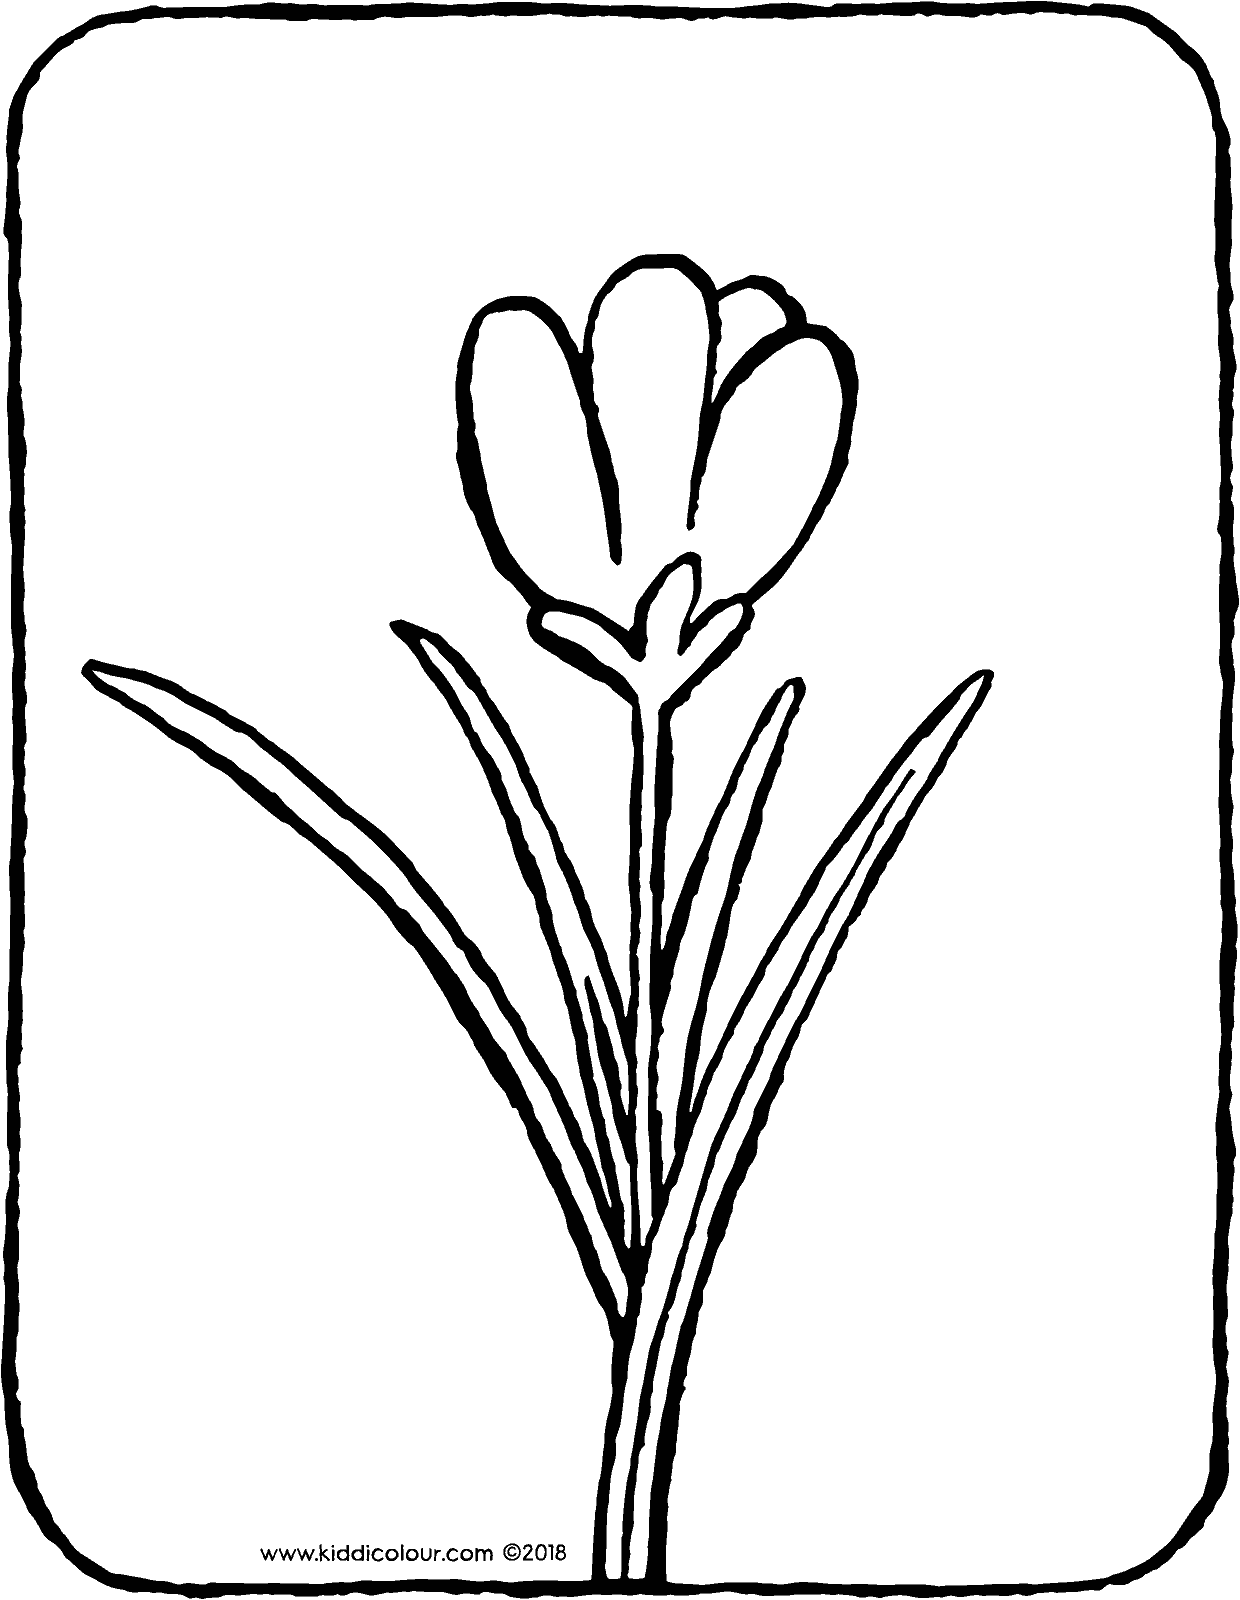 crocus colouring page drawing picture 01V